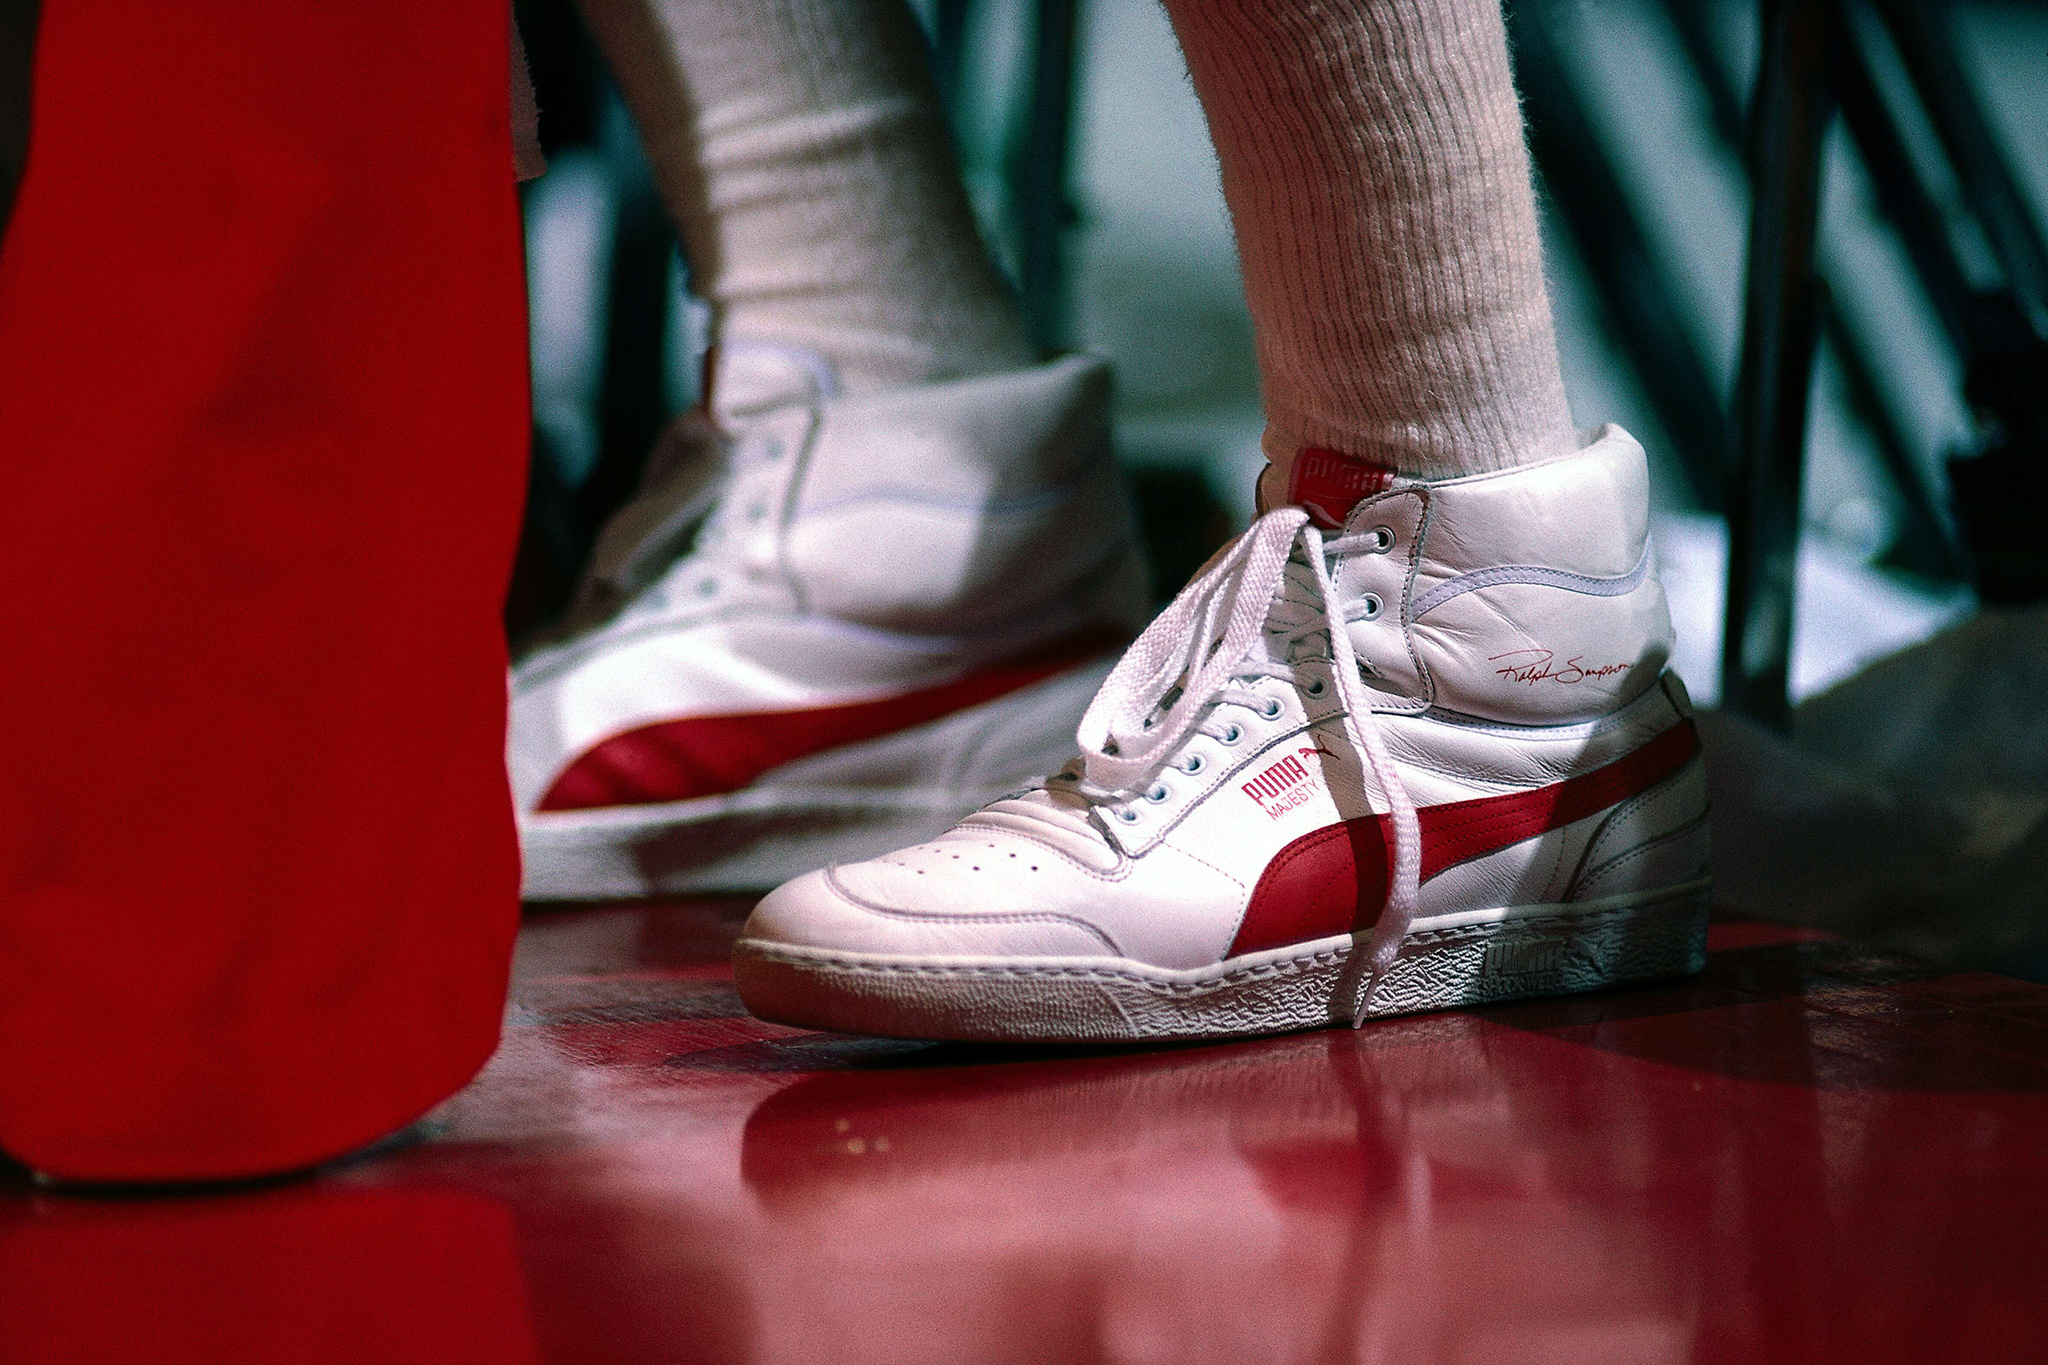 best sneakers 3b5da 9f81c 1985  A closeup of the Houston Rockets Ralph Sampson s sneakers during the  NBA game in Houston, Texas. (Photo by Andrew D. Bernstein NBAE Getty Images)